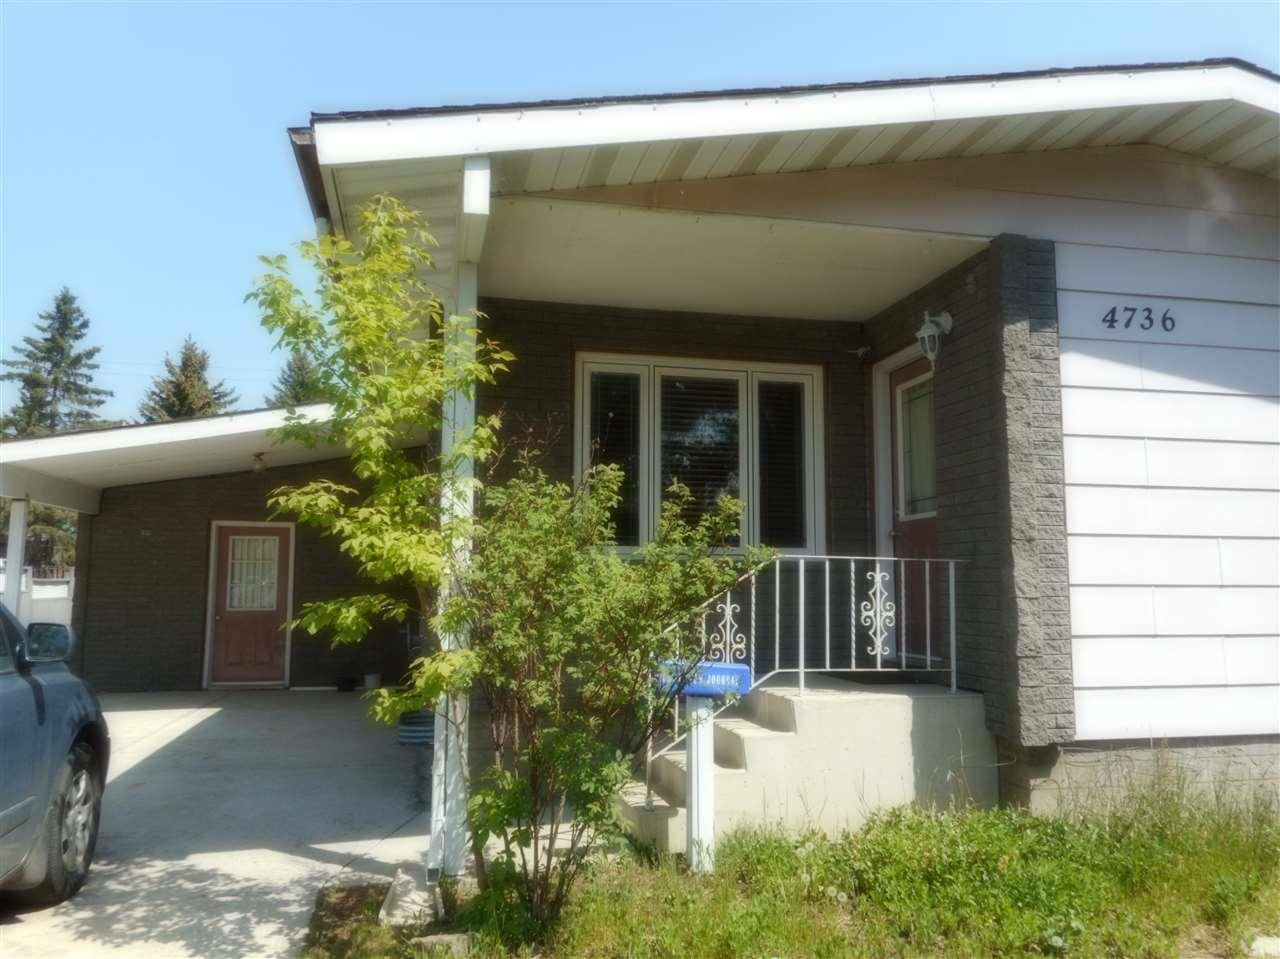 House for sale at 4736 56 Ave Tofield Alberta - MLS: E4189094